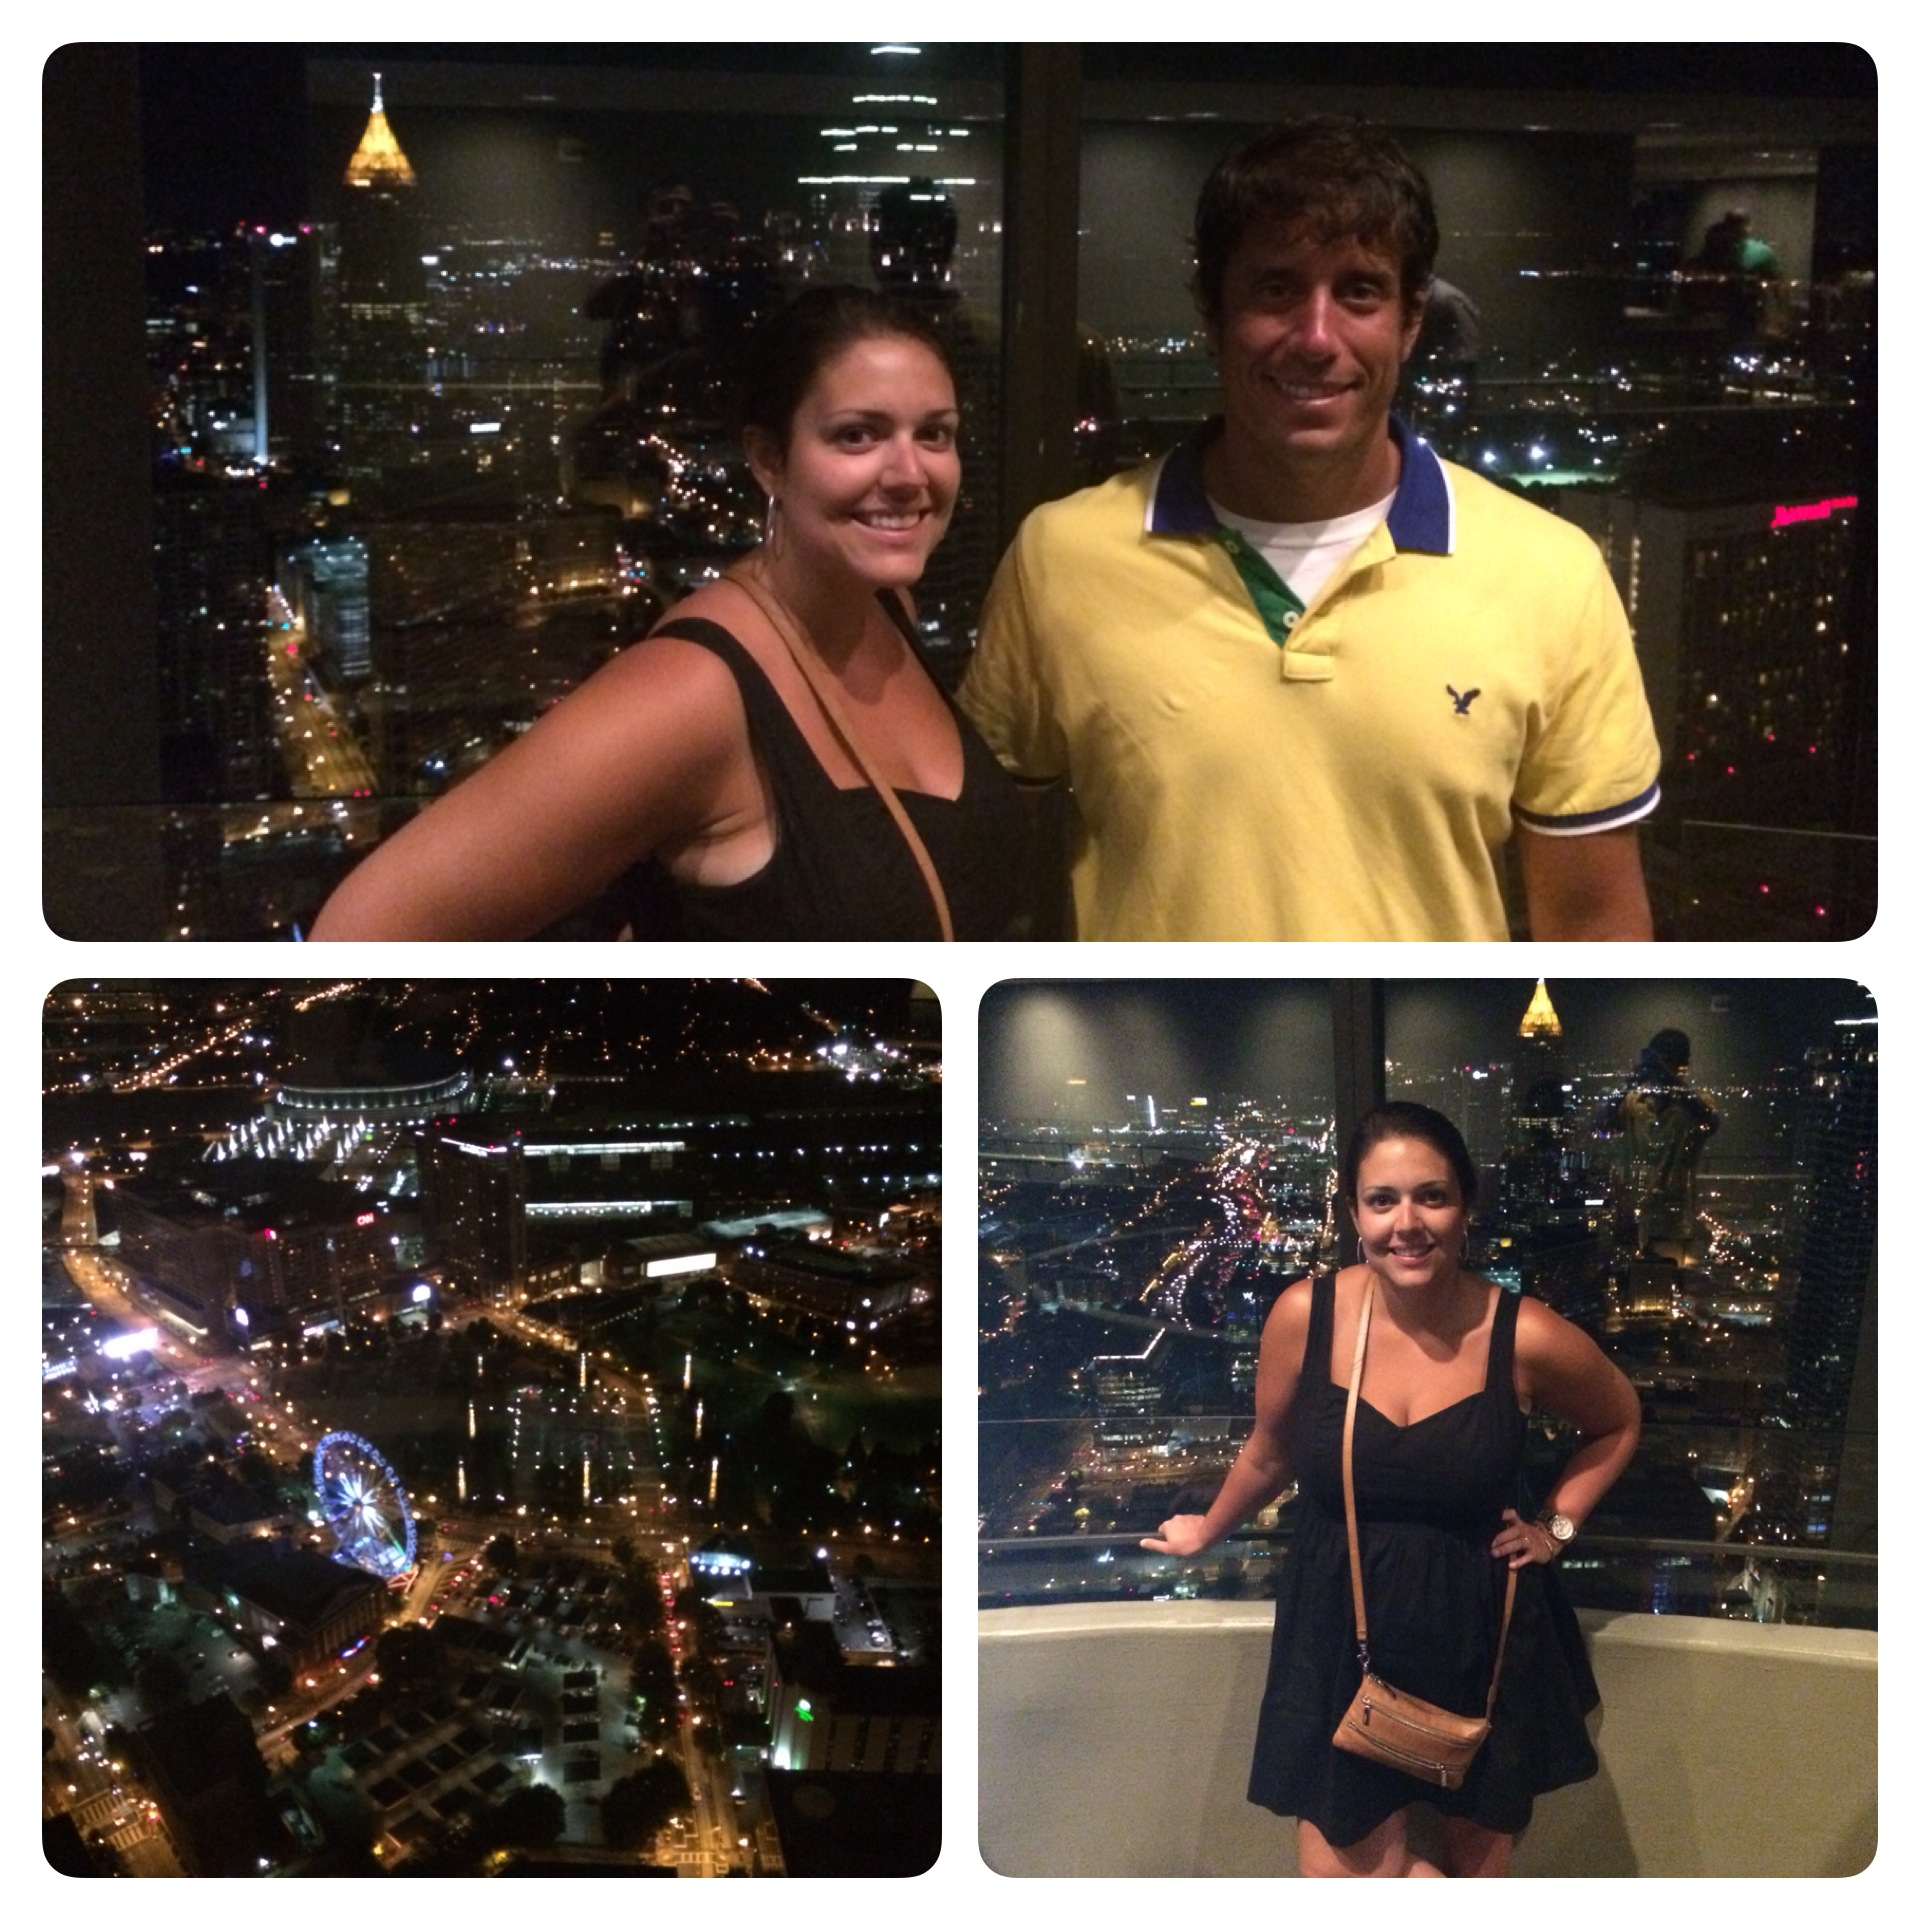 Sidney and I were at the top of the city at the Sundial restaurant.